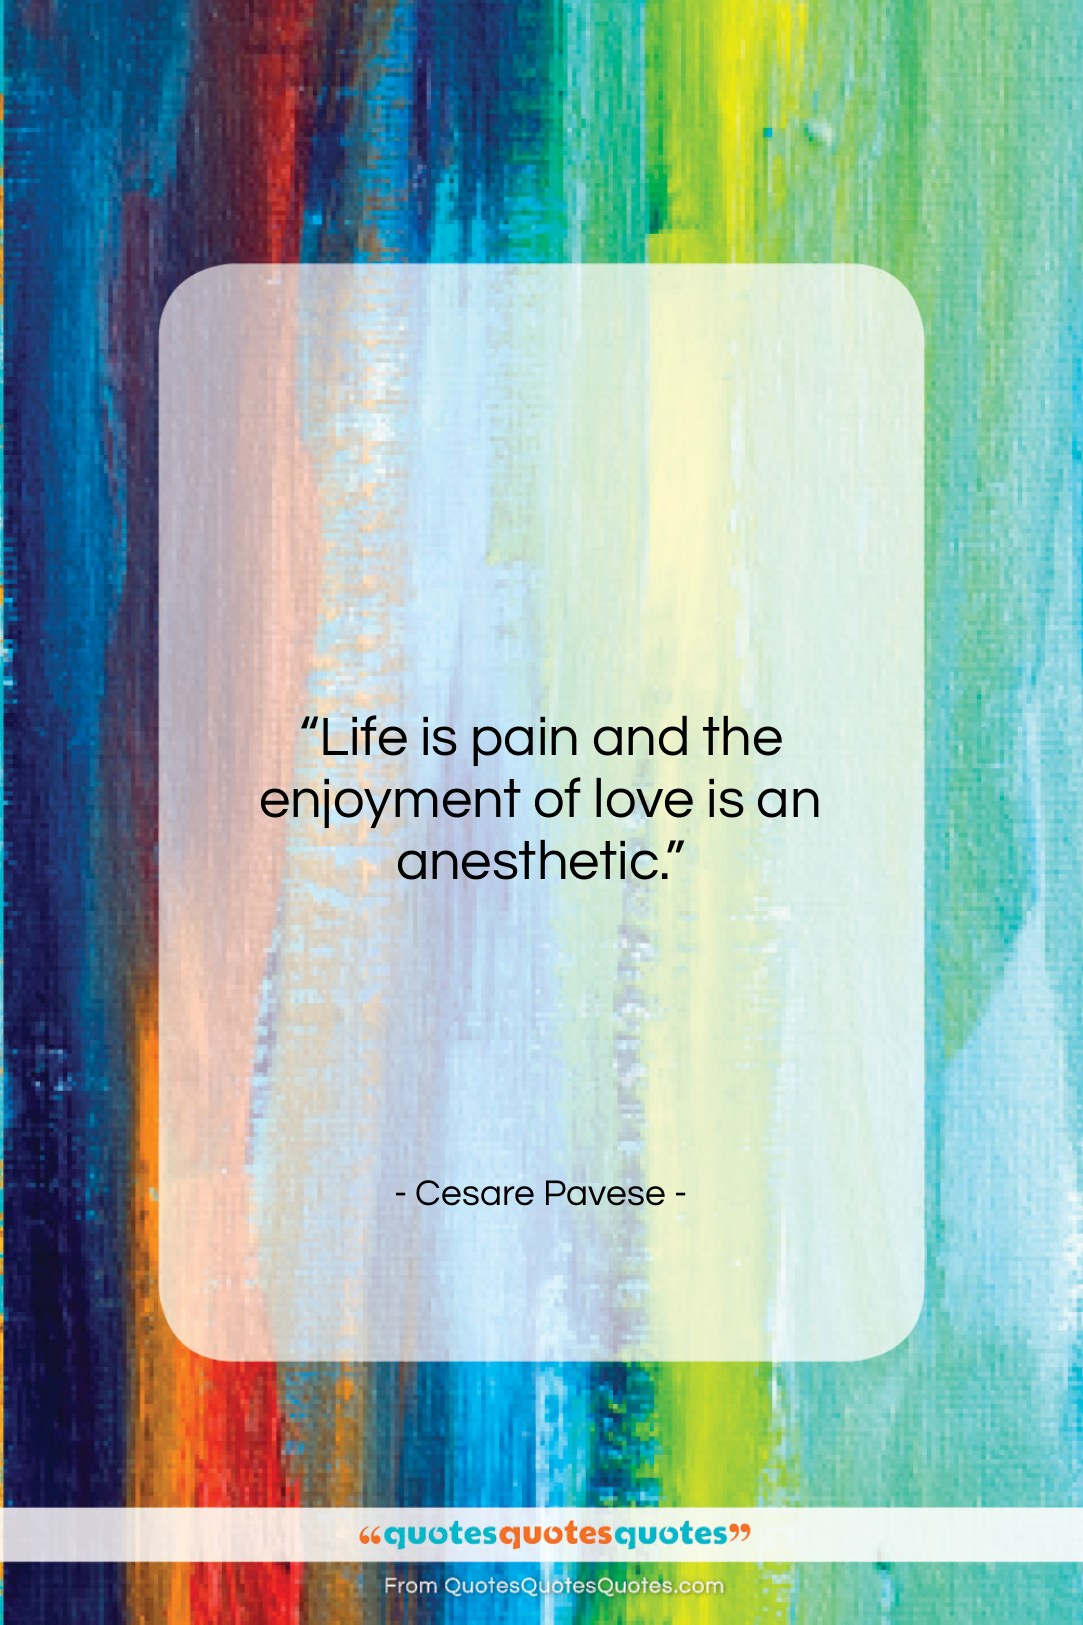 """Cesare Pavese quote: """"Life is pain and the enjoyment of…""""- at QuotesQuotesQuotes.com"""